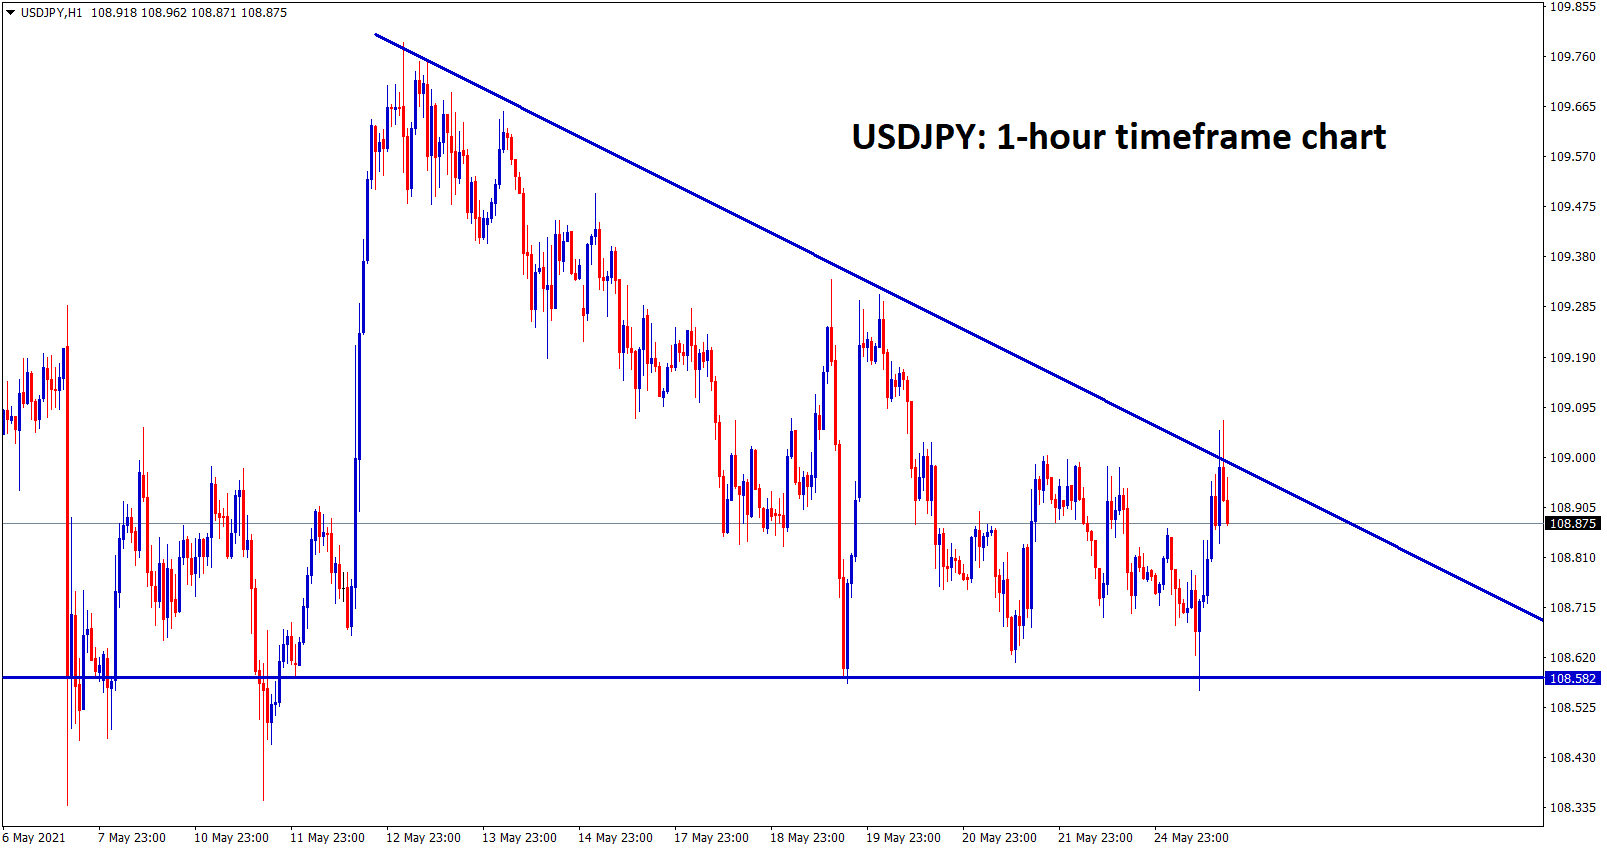 USDJPY is moving in a descending triangle pattern forming lower highs and equal lows